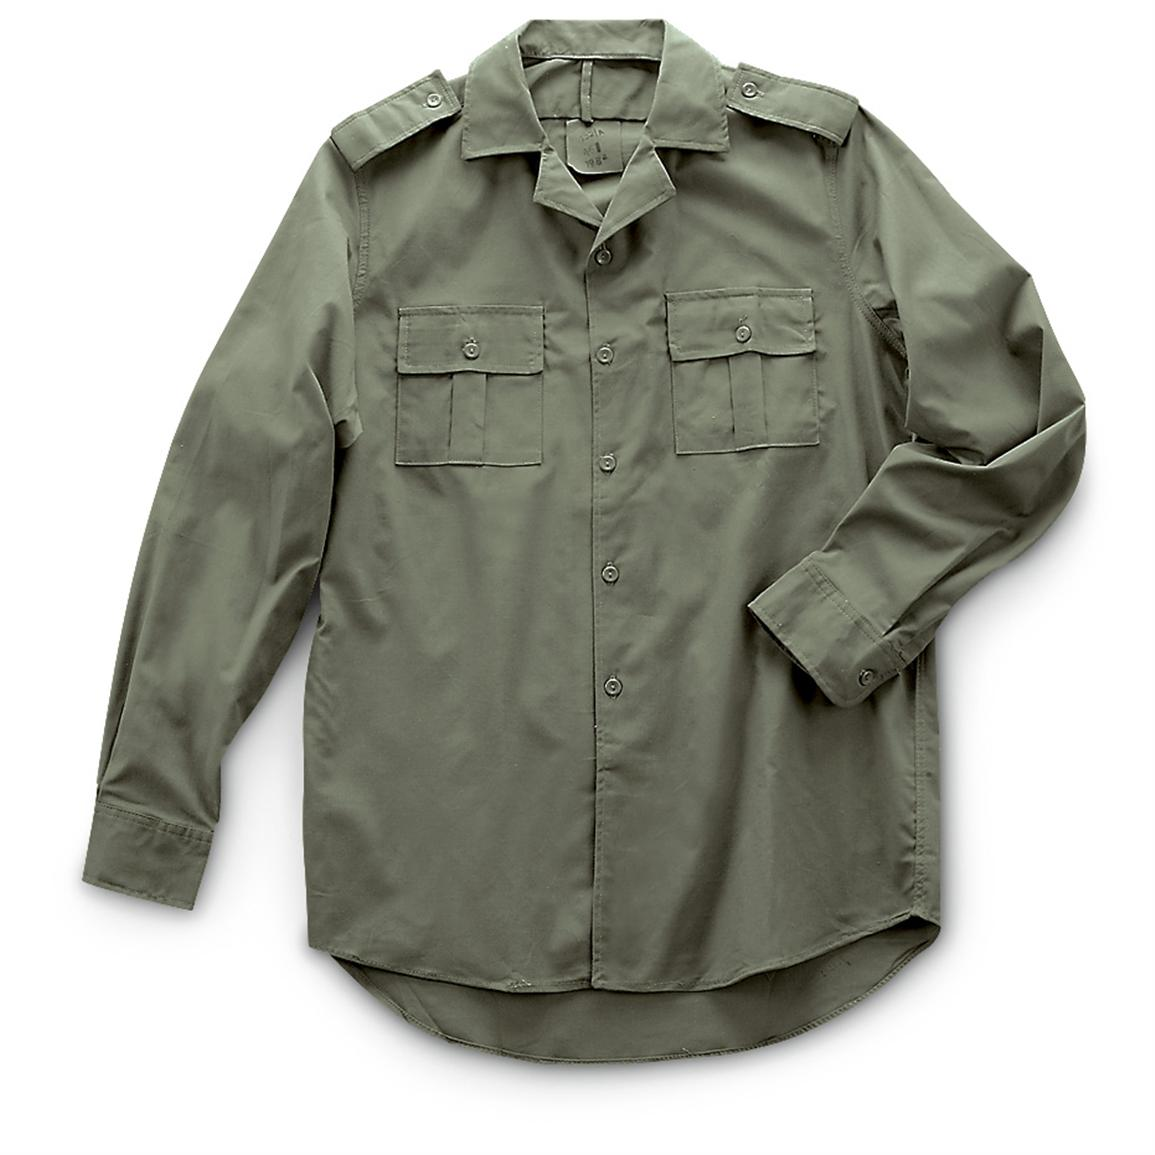 4 used Romanian Military Long-sleeved Field Shirts, Olive Drab